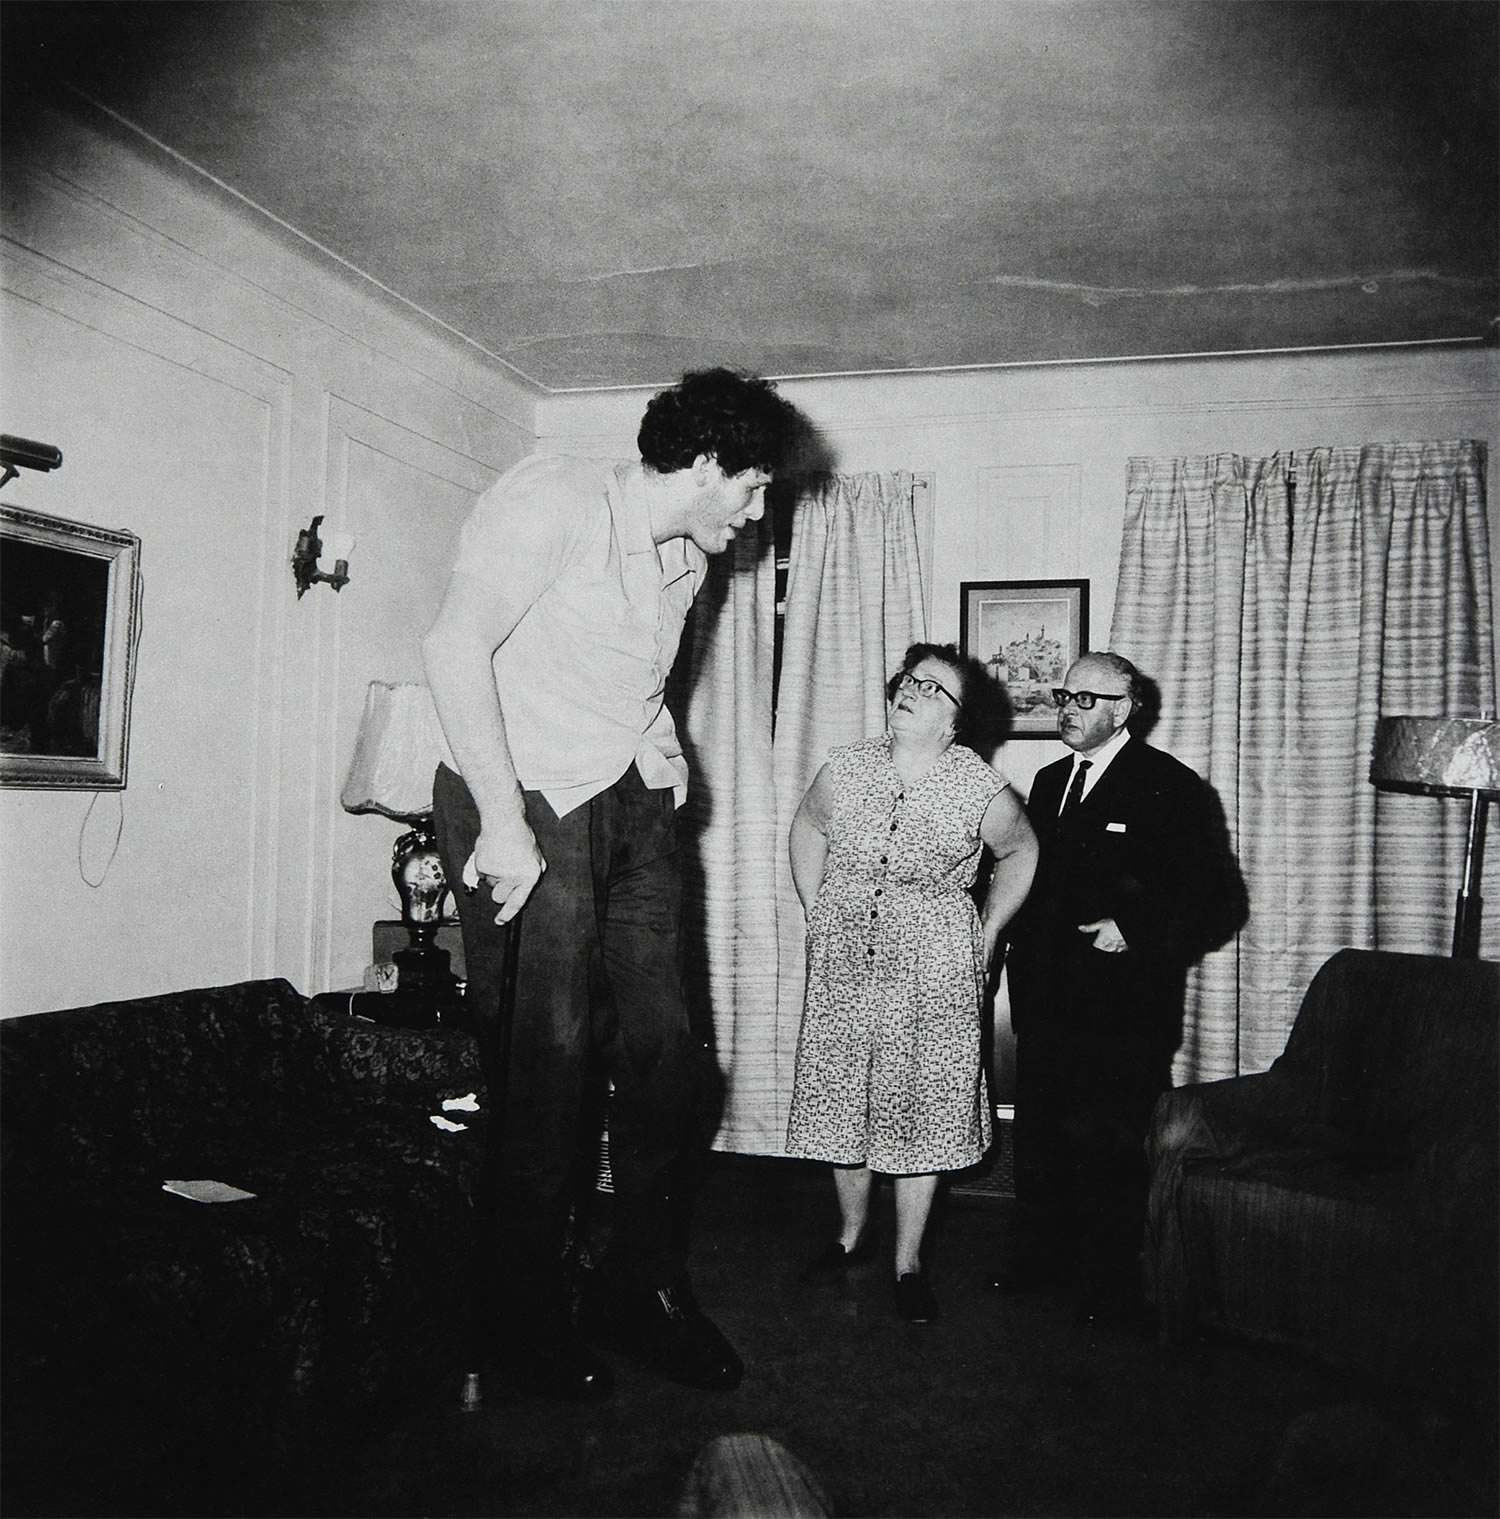 diane arbus, A Jewish Giant at Home with His Parents, in the Bronx, N.Y., 1970